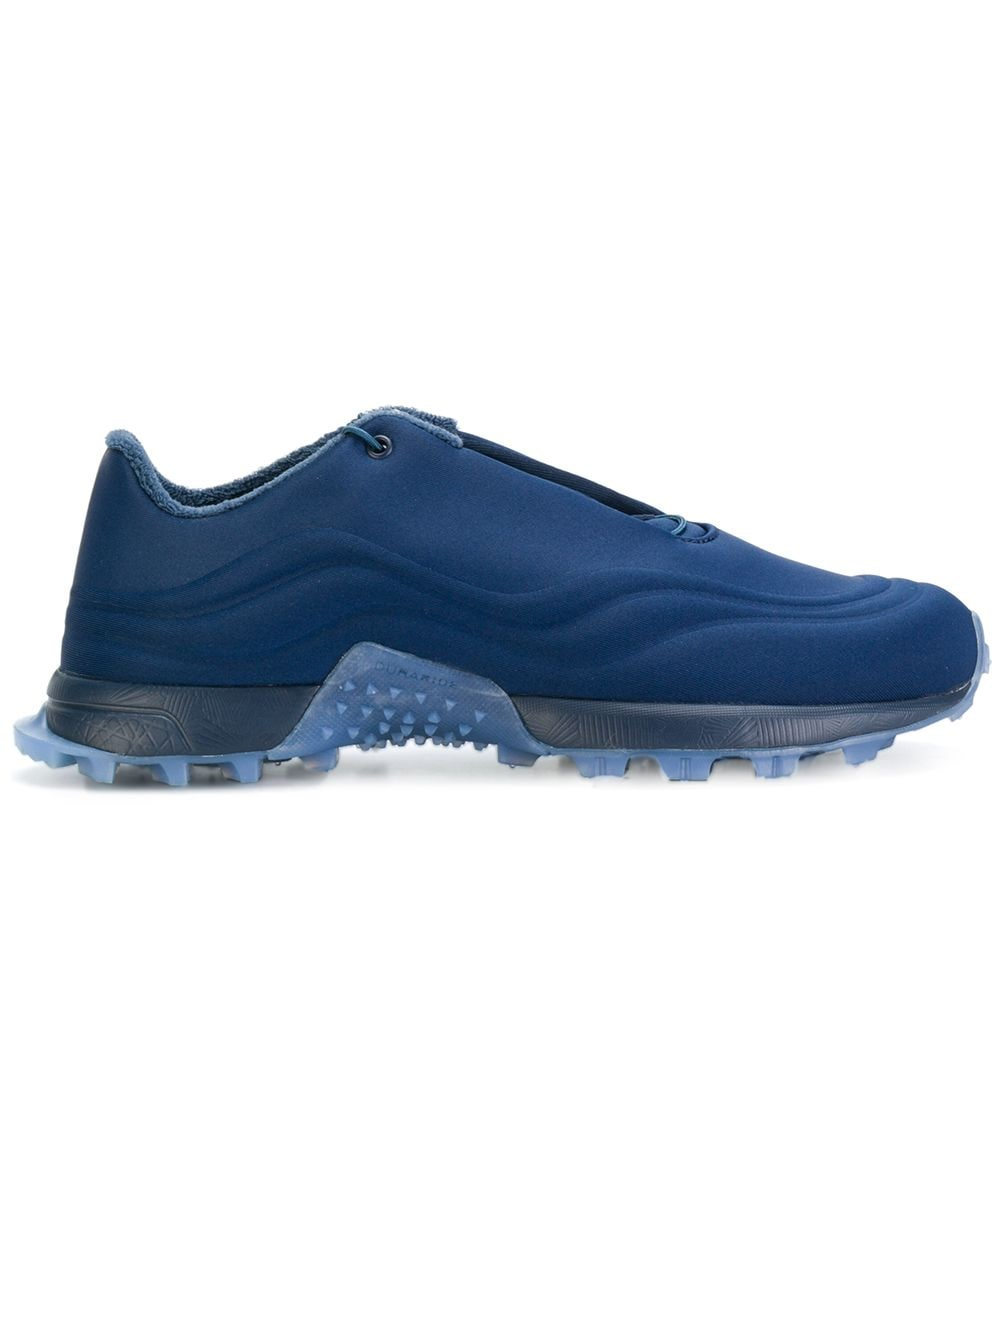 Reebok ridged sole slip-on sneakers - Blue von Reebok